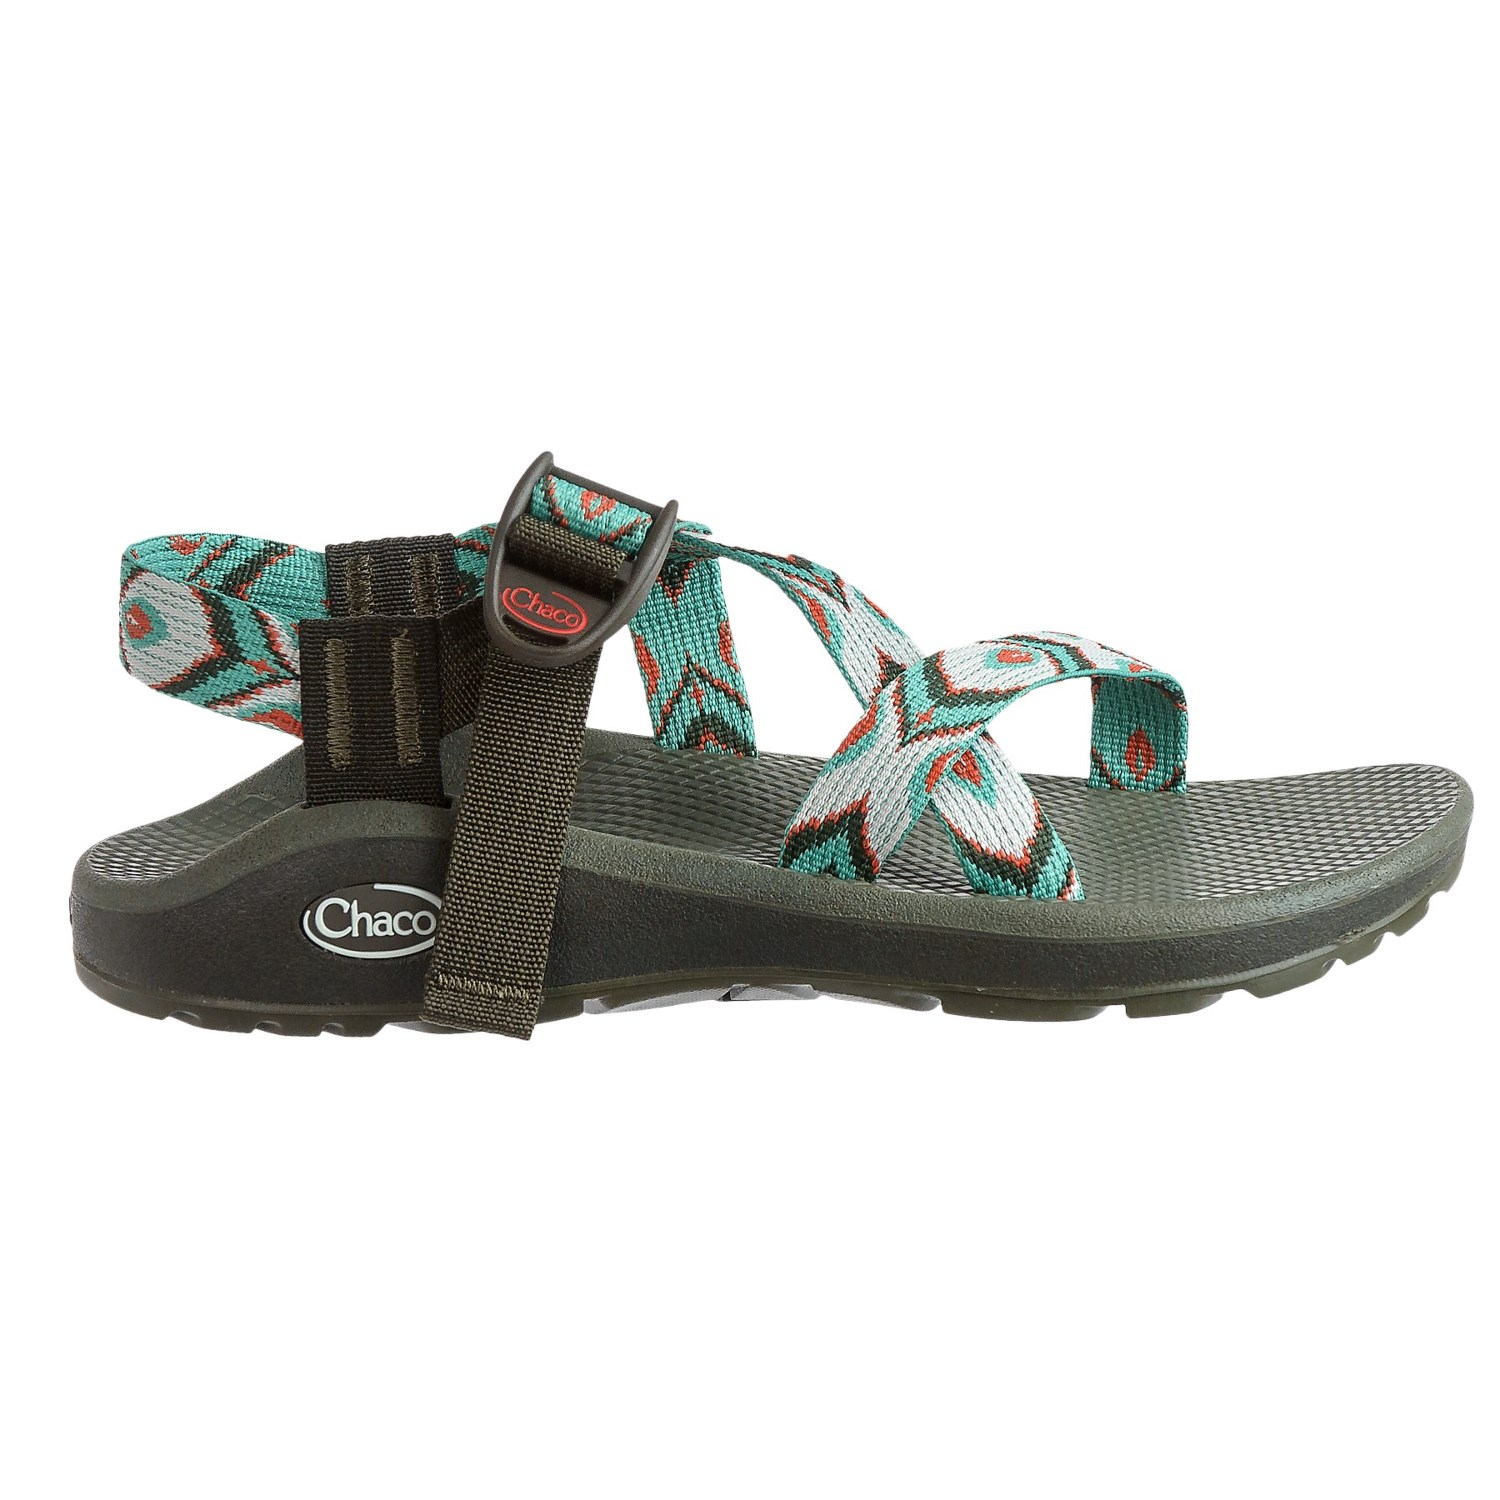 7289549ffcdb Chaco Z Cloud Sport Sandals (For Women) - Save 45%